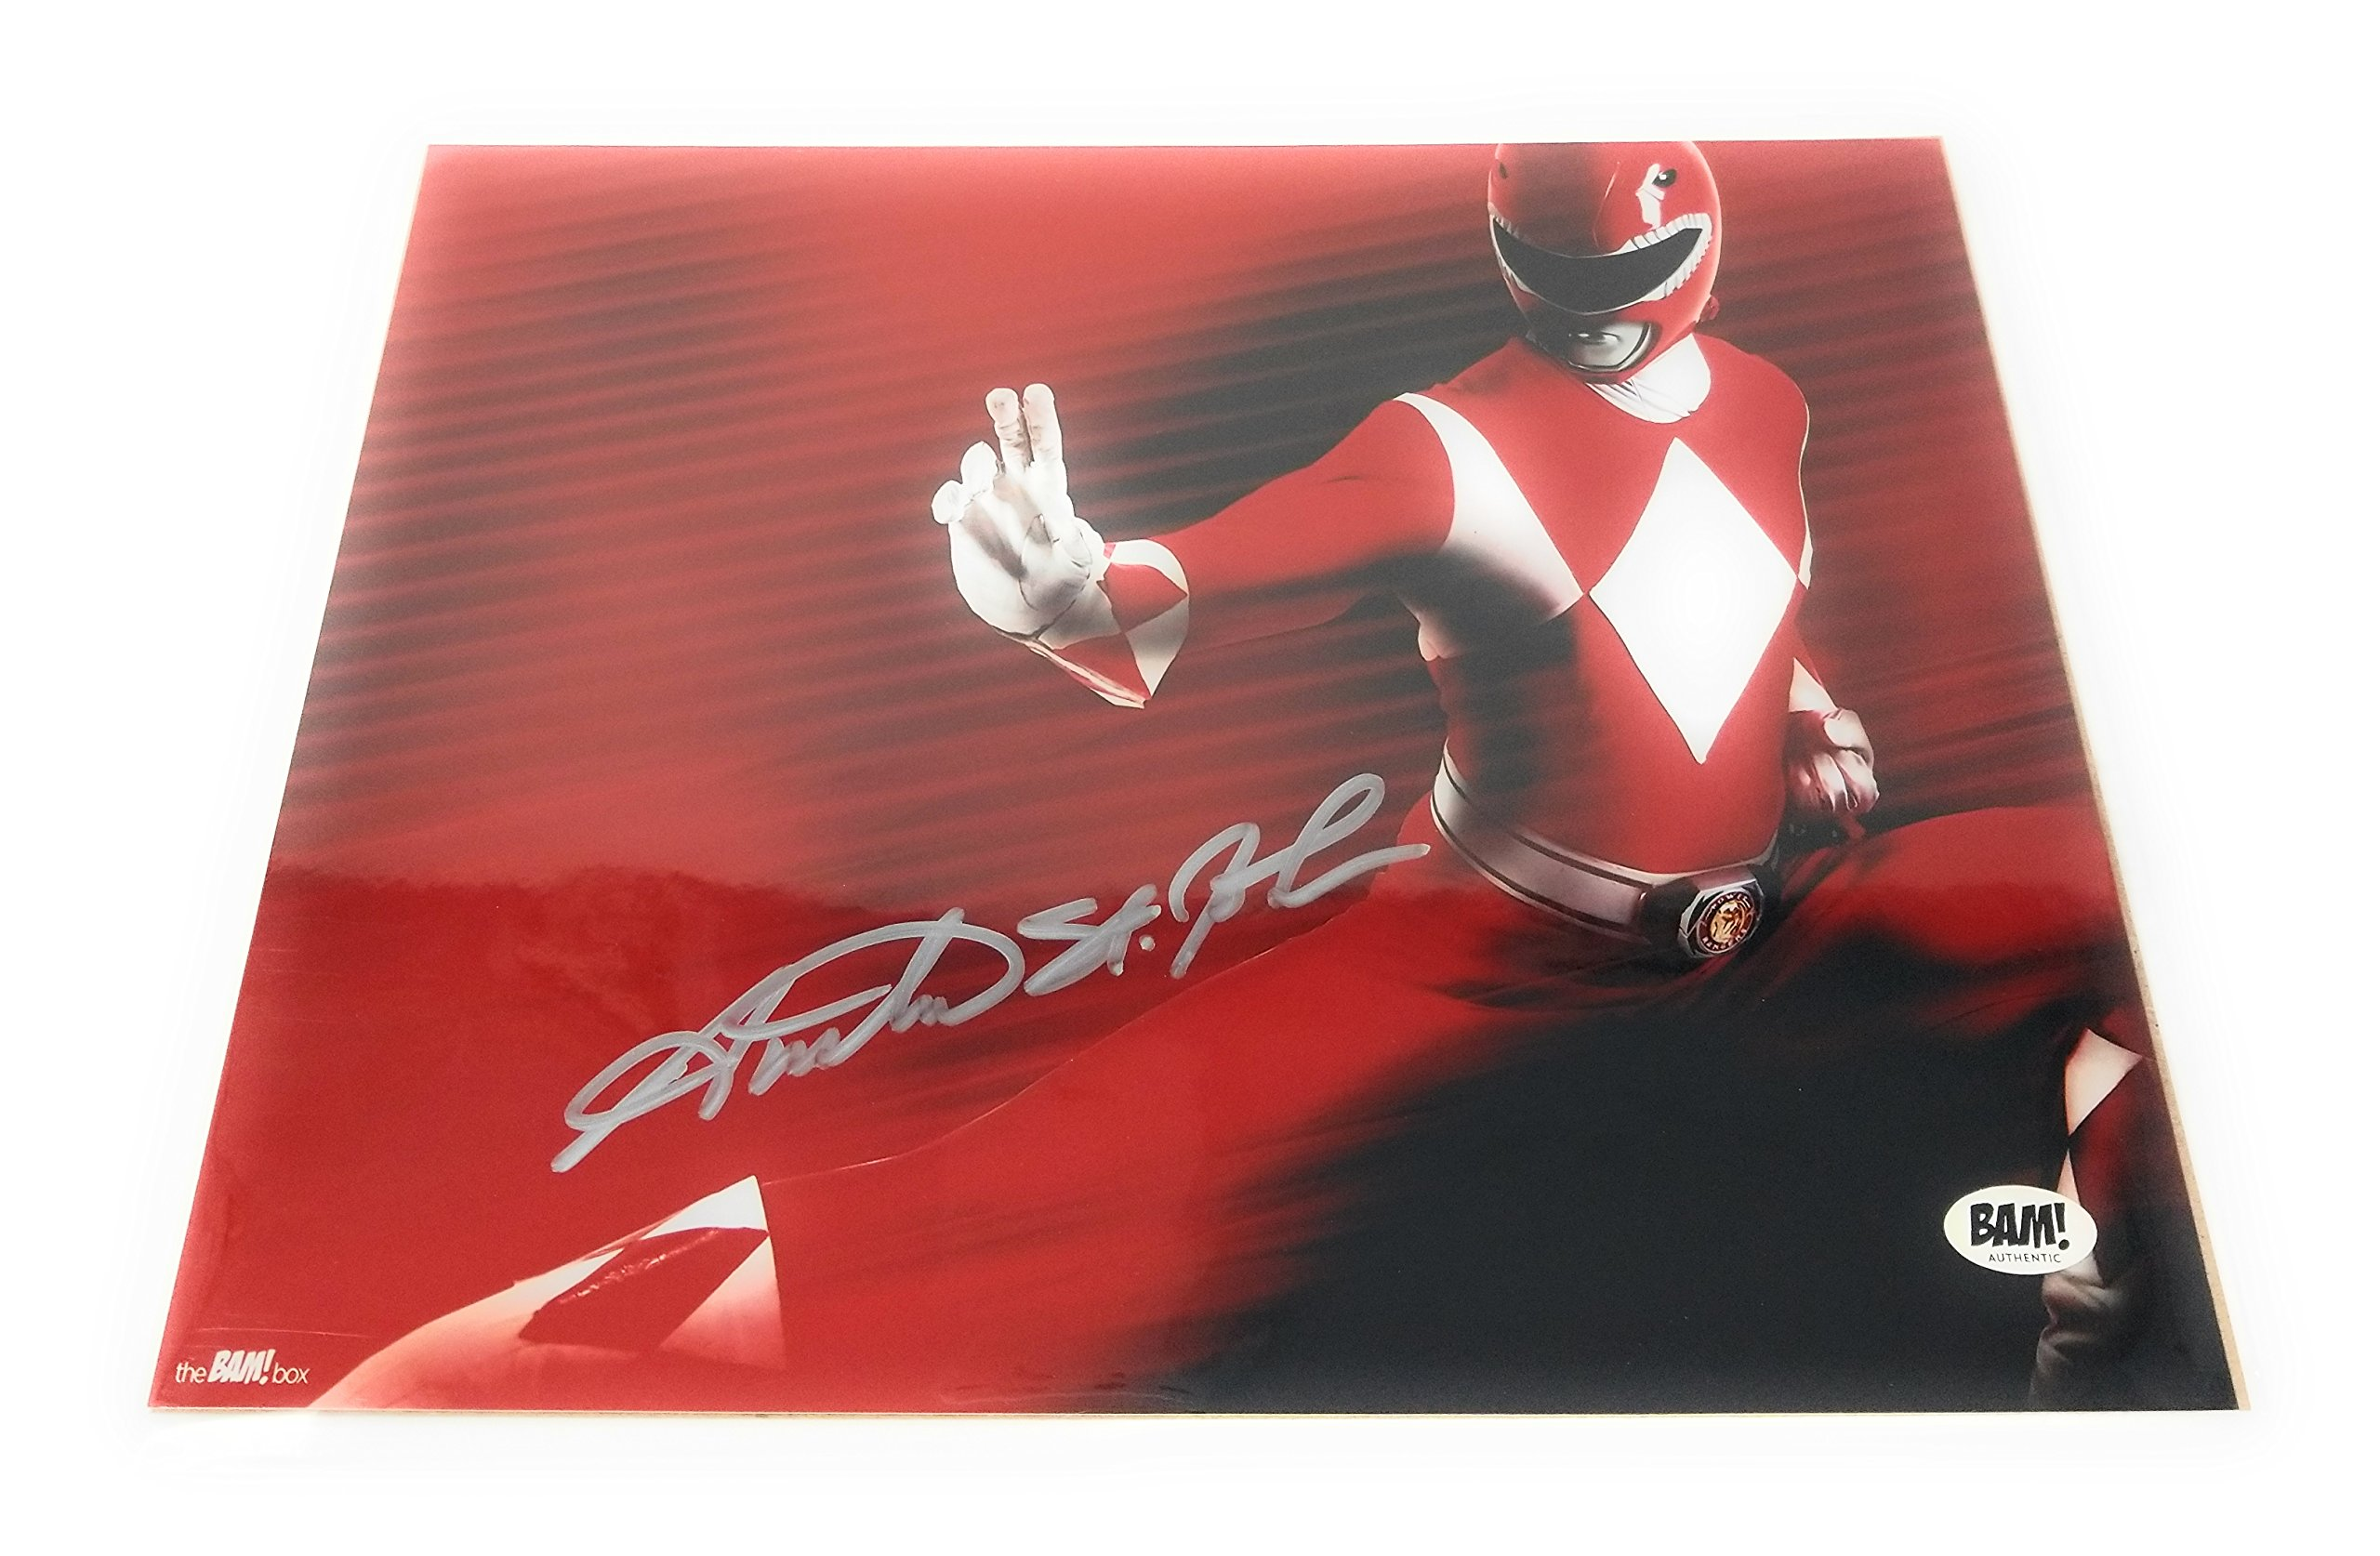 Autographed Red Ranger Austin St John Mighty Morphin Power Ranger 8x10 Photo Print Bam Box Exclusive Amazon Com Au Home